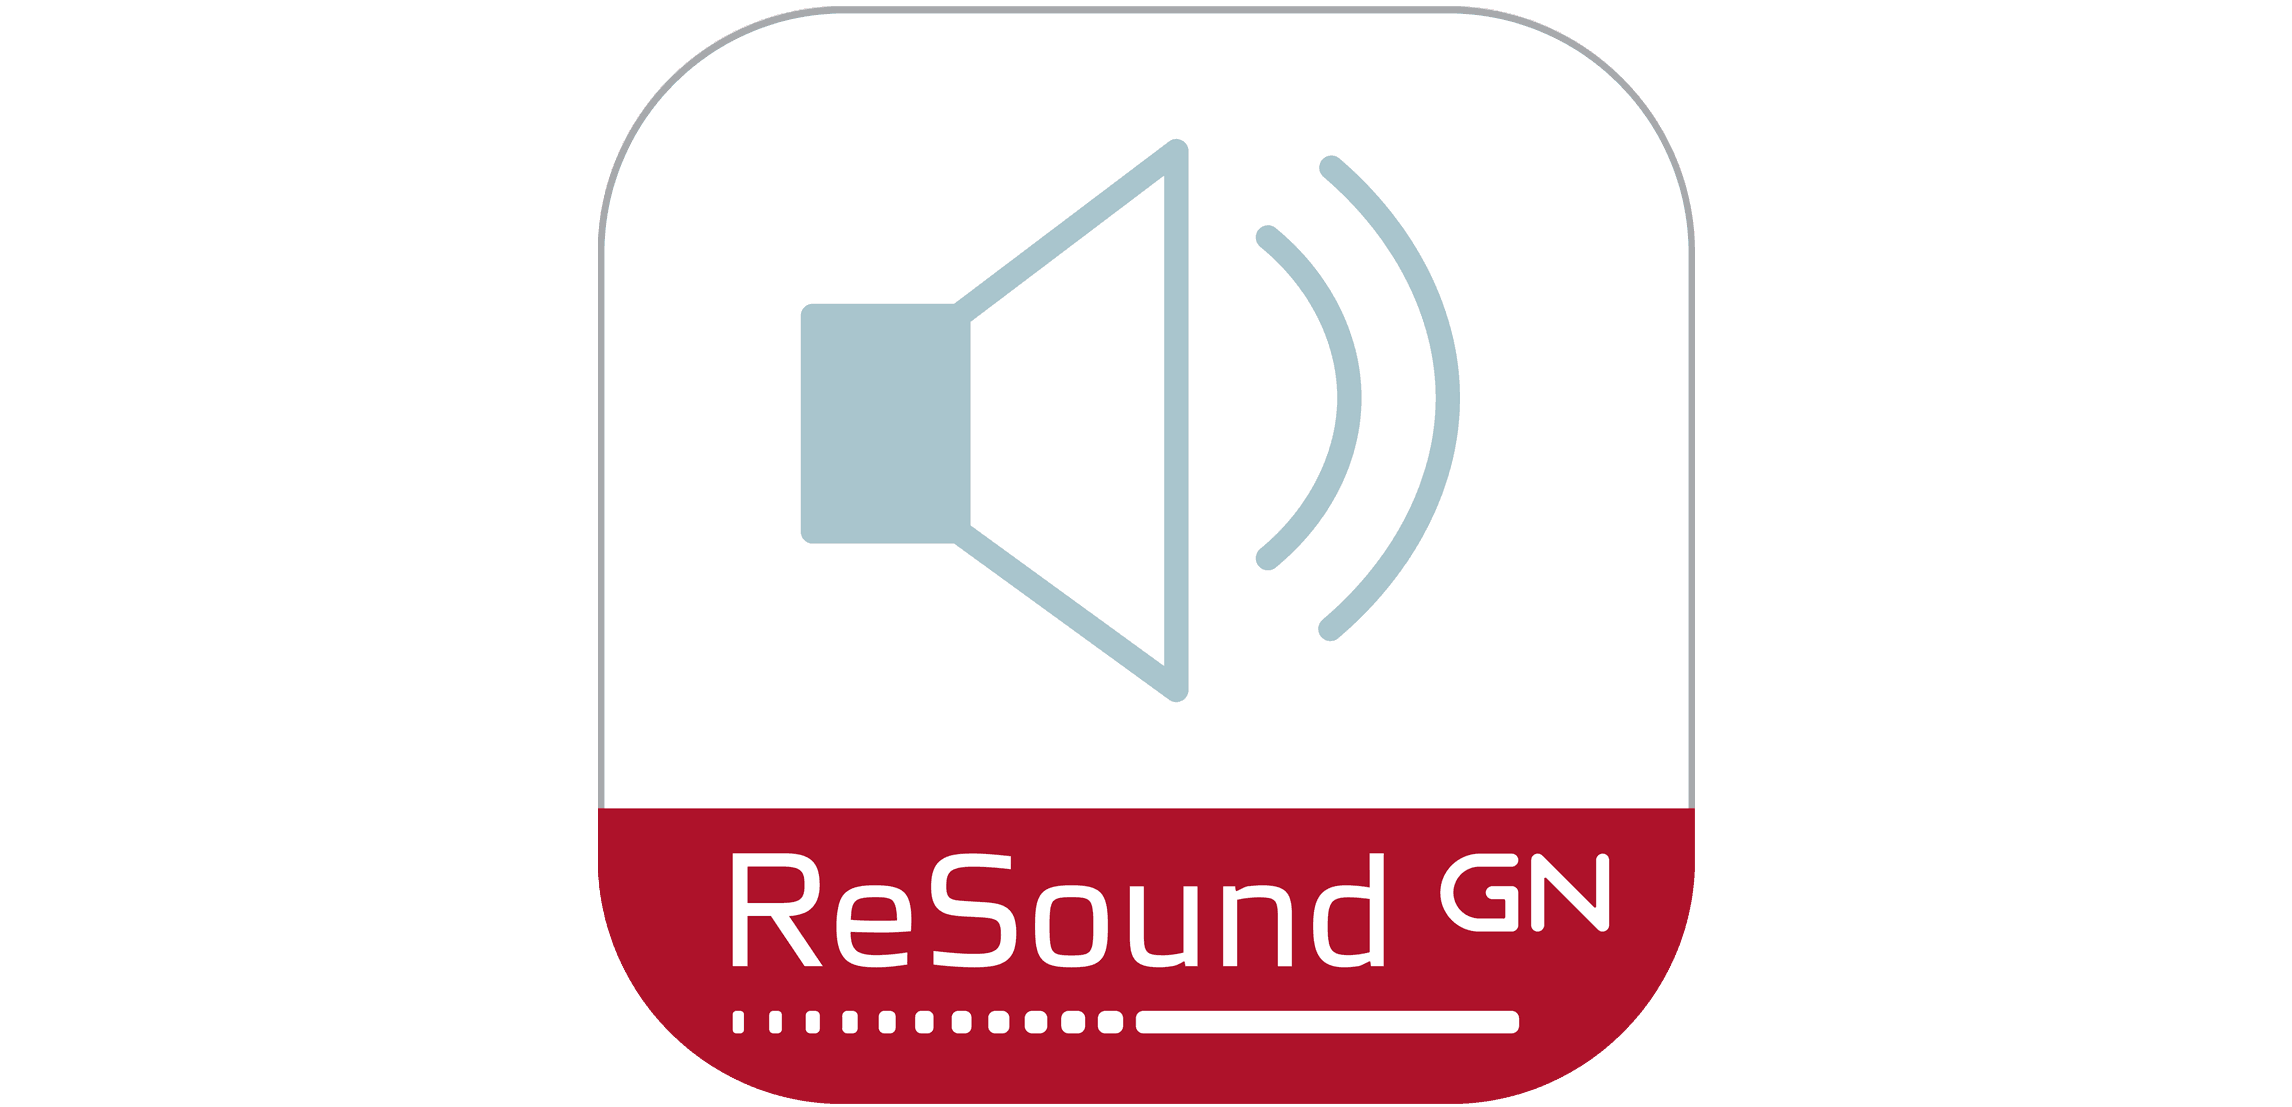 ReSound Remote appikon.